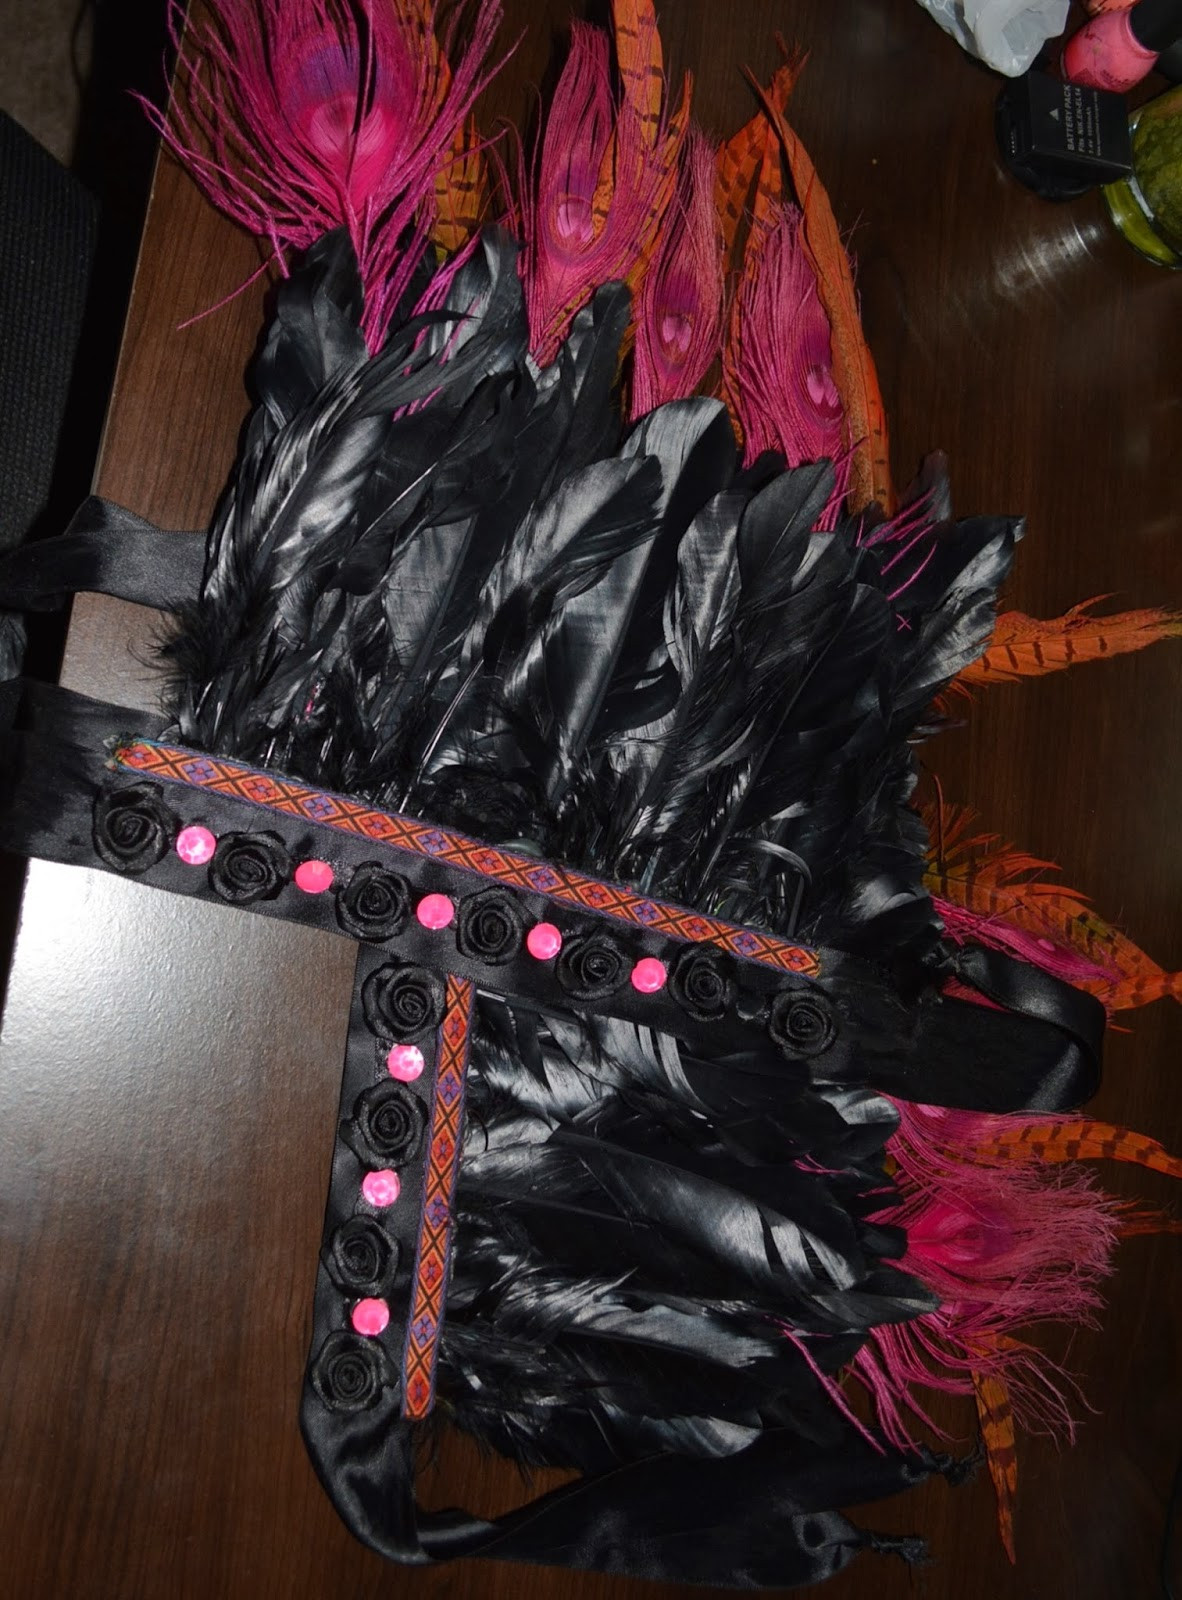 Best ideas about DIY Carnival Costume . Save or Pin AngelaPanama DIY Carnival Costume 2 Now.